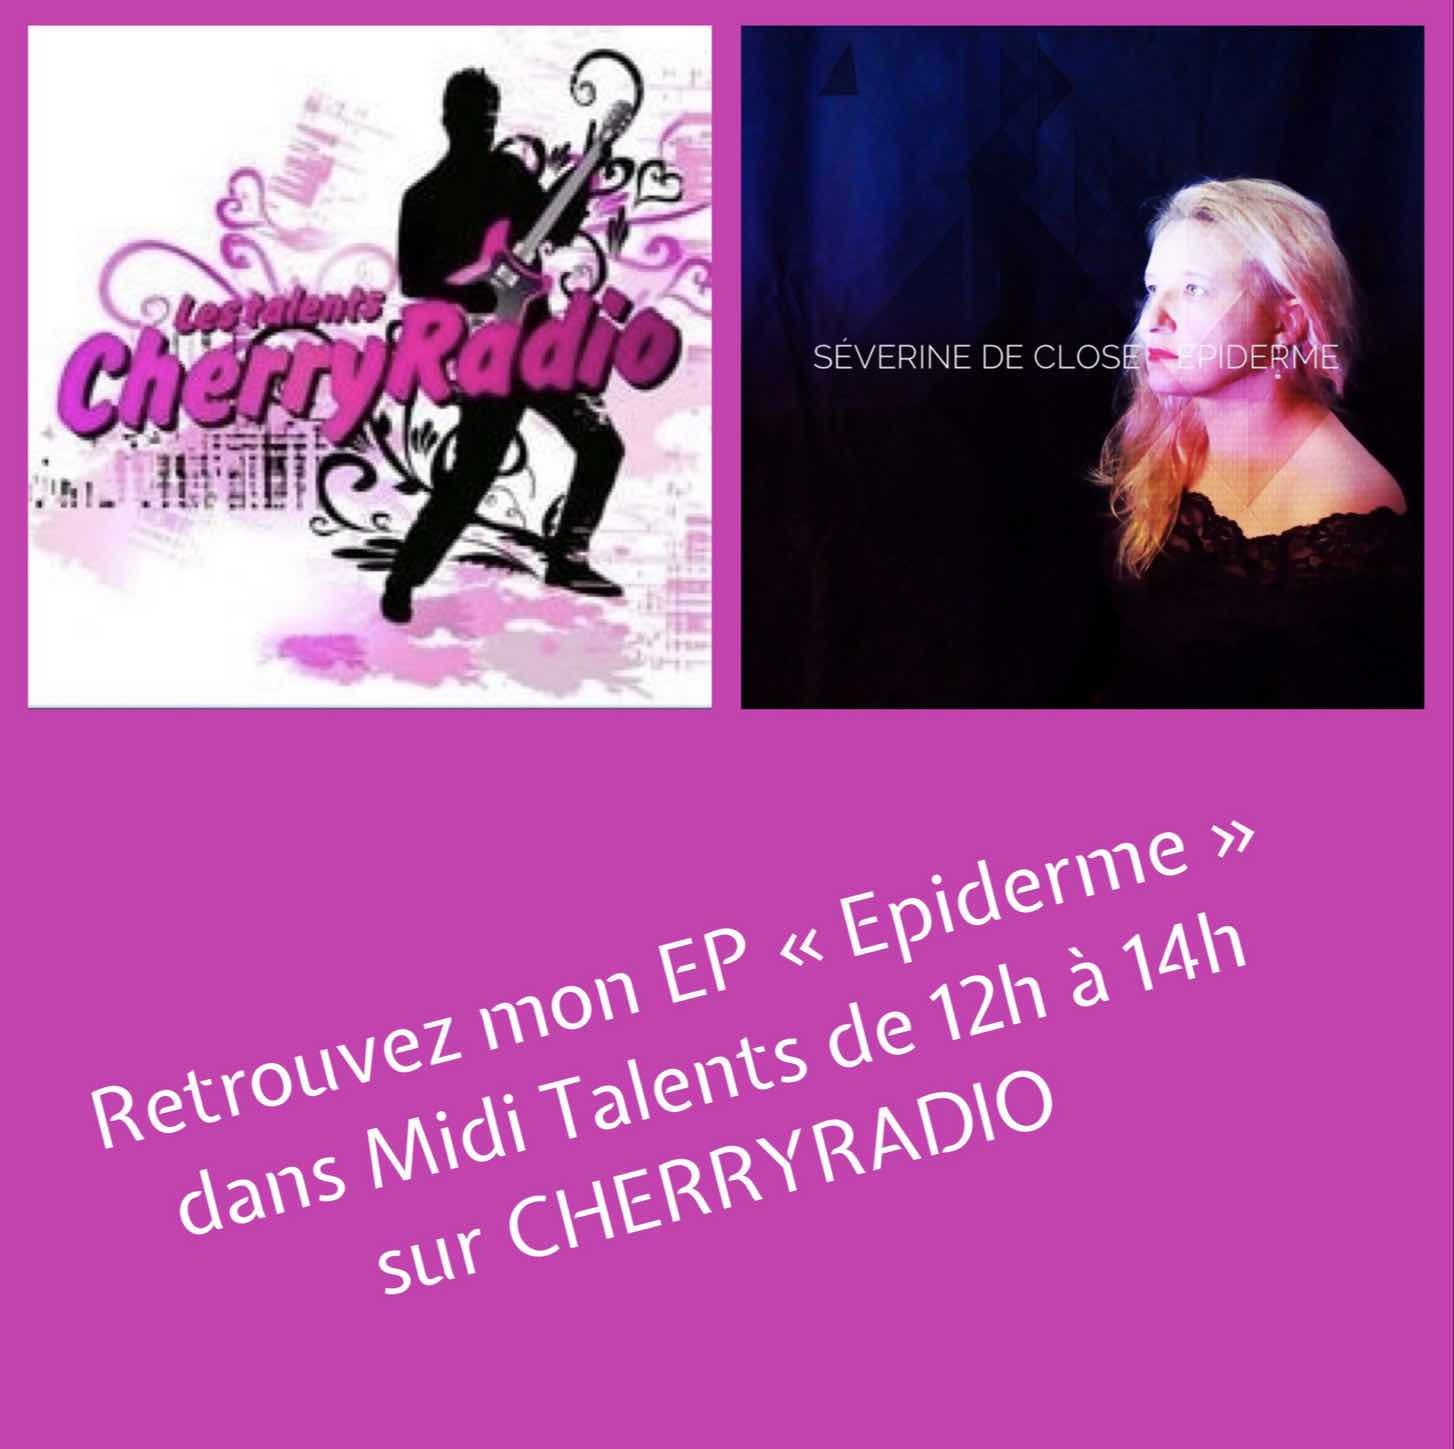 Epiderme sur Cherry Radio